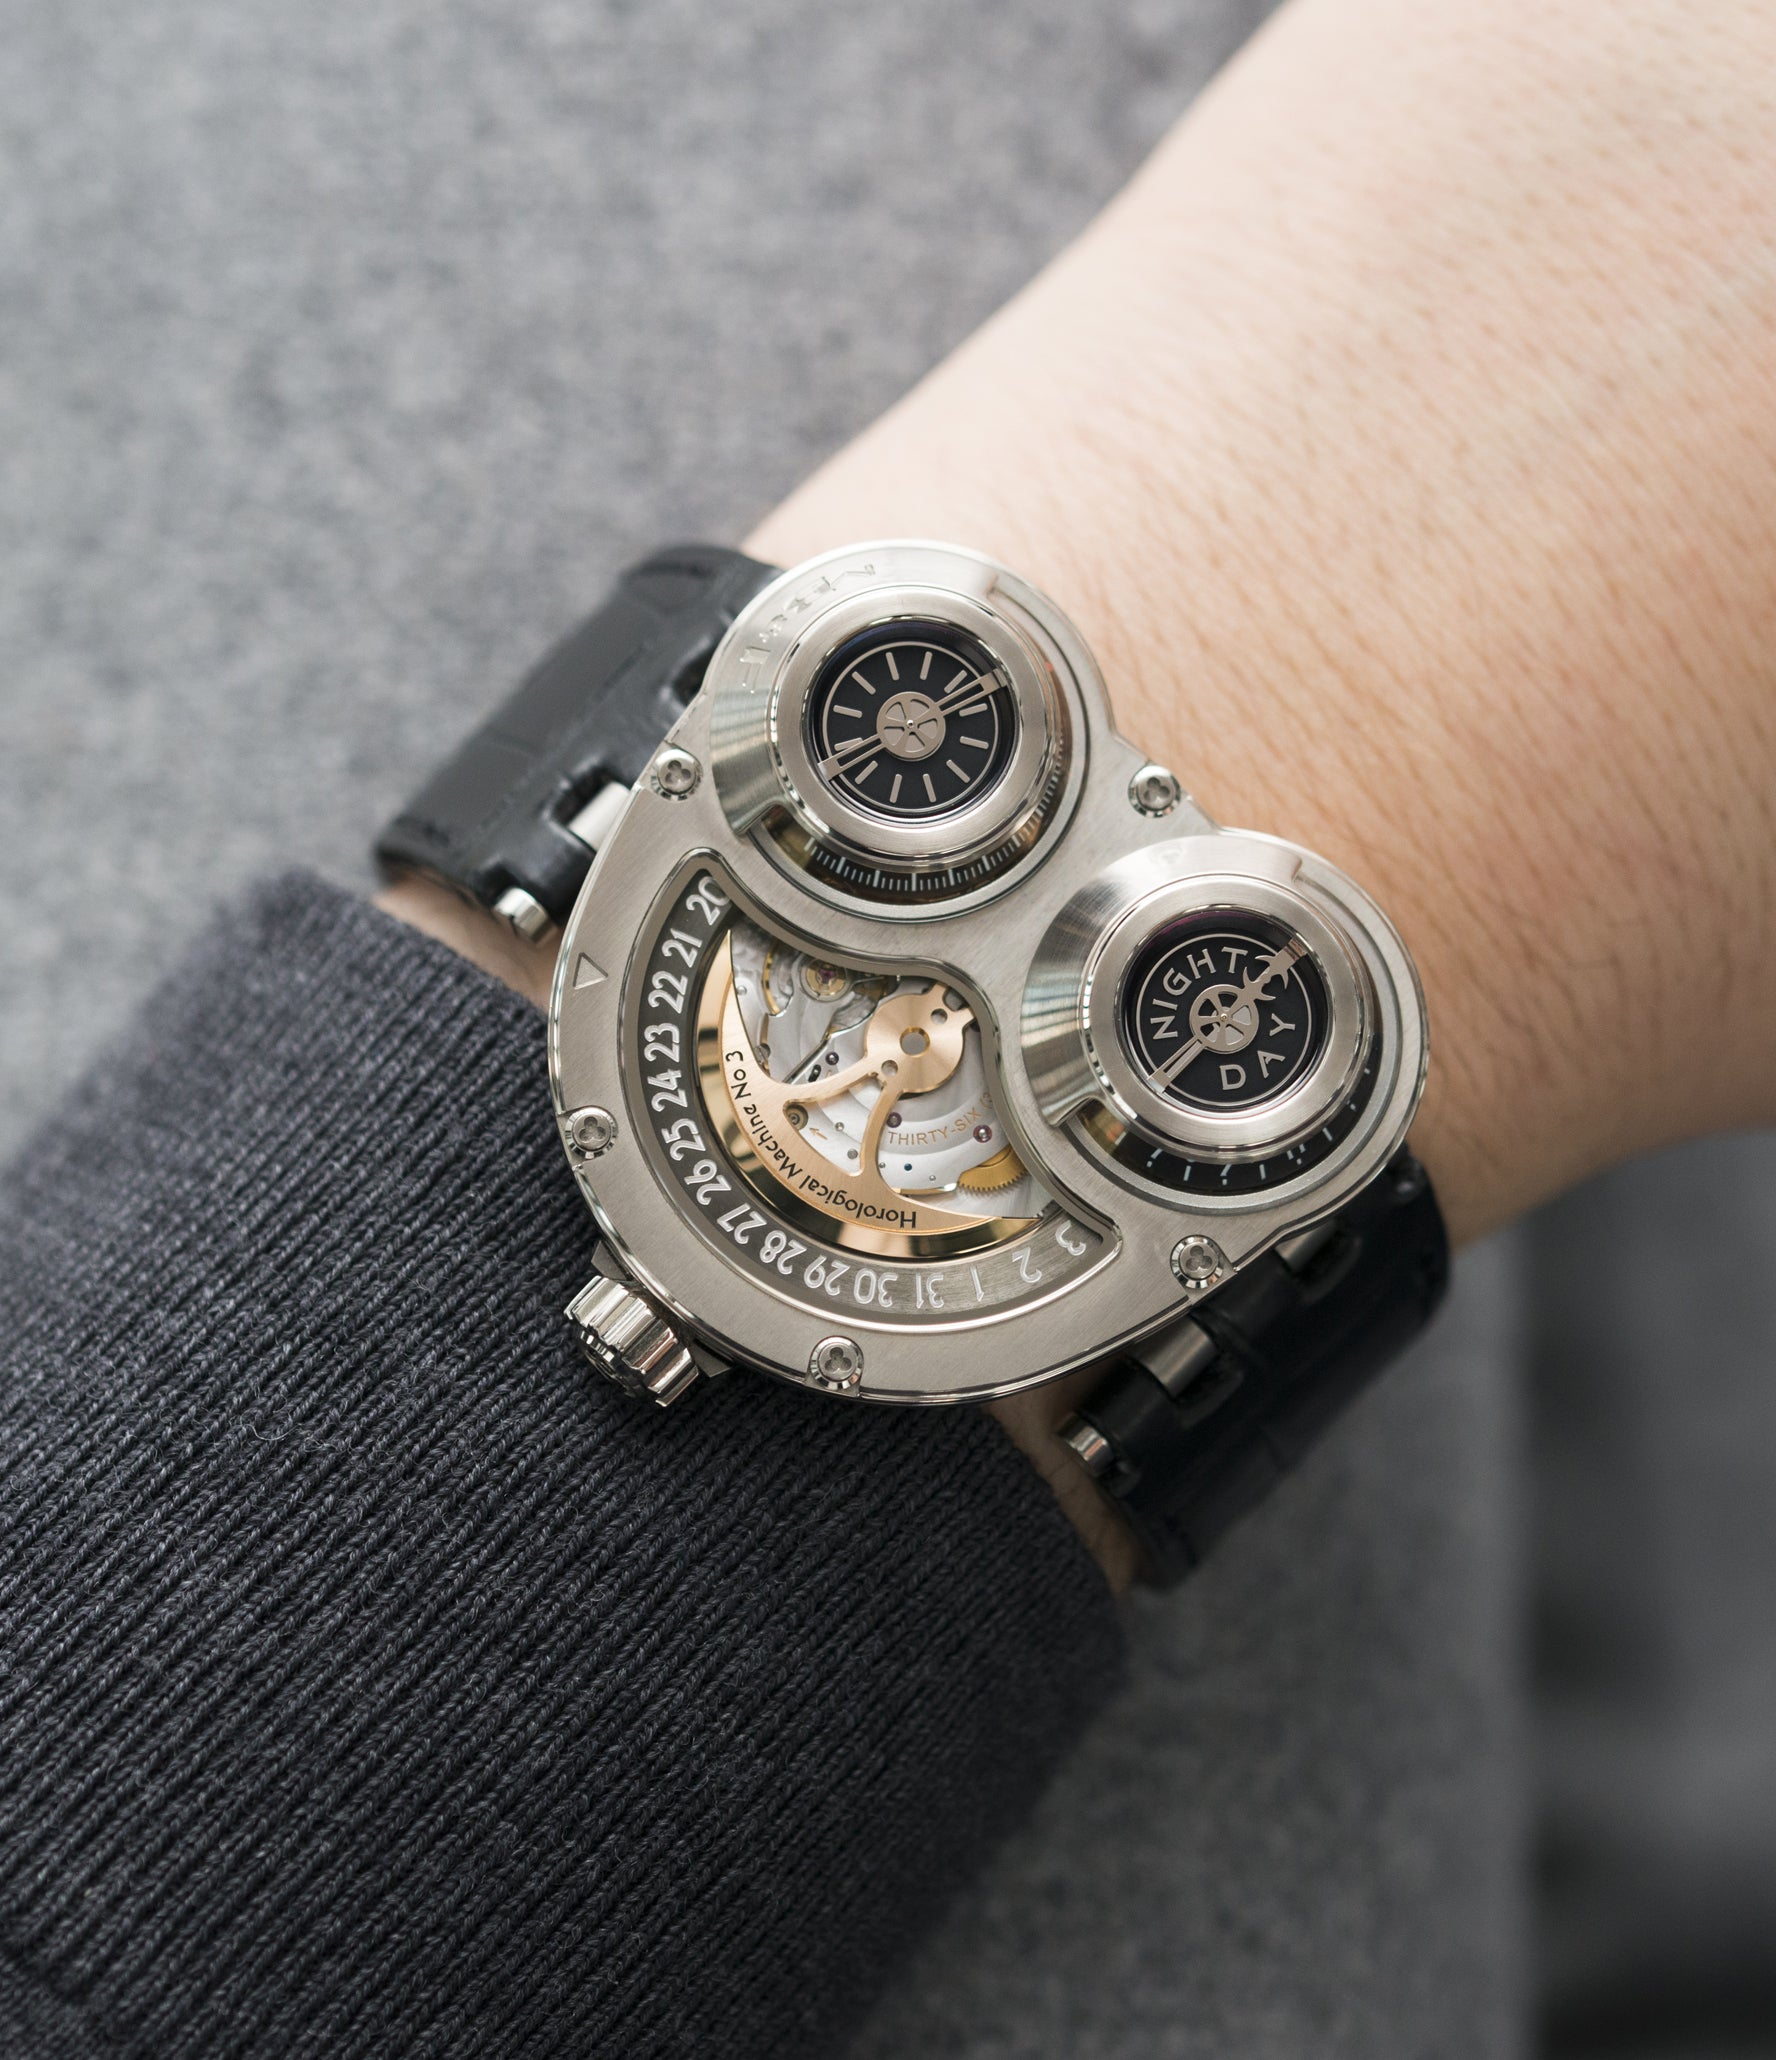 on the wrist MB&F Sidewinder Horological Machine HM3 white gold watch by independent watchmaker Max Busser Wiederrecht for sale online at A Collected Man London UK specialist of rare watches